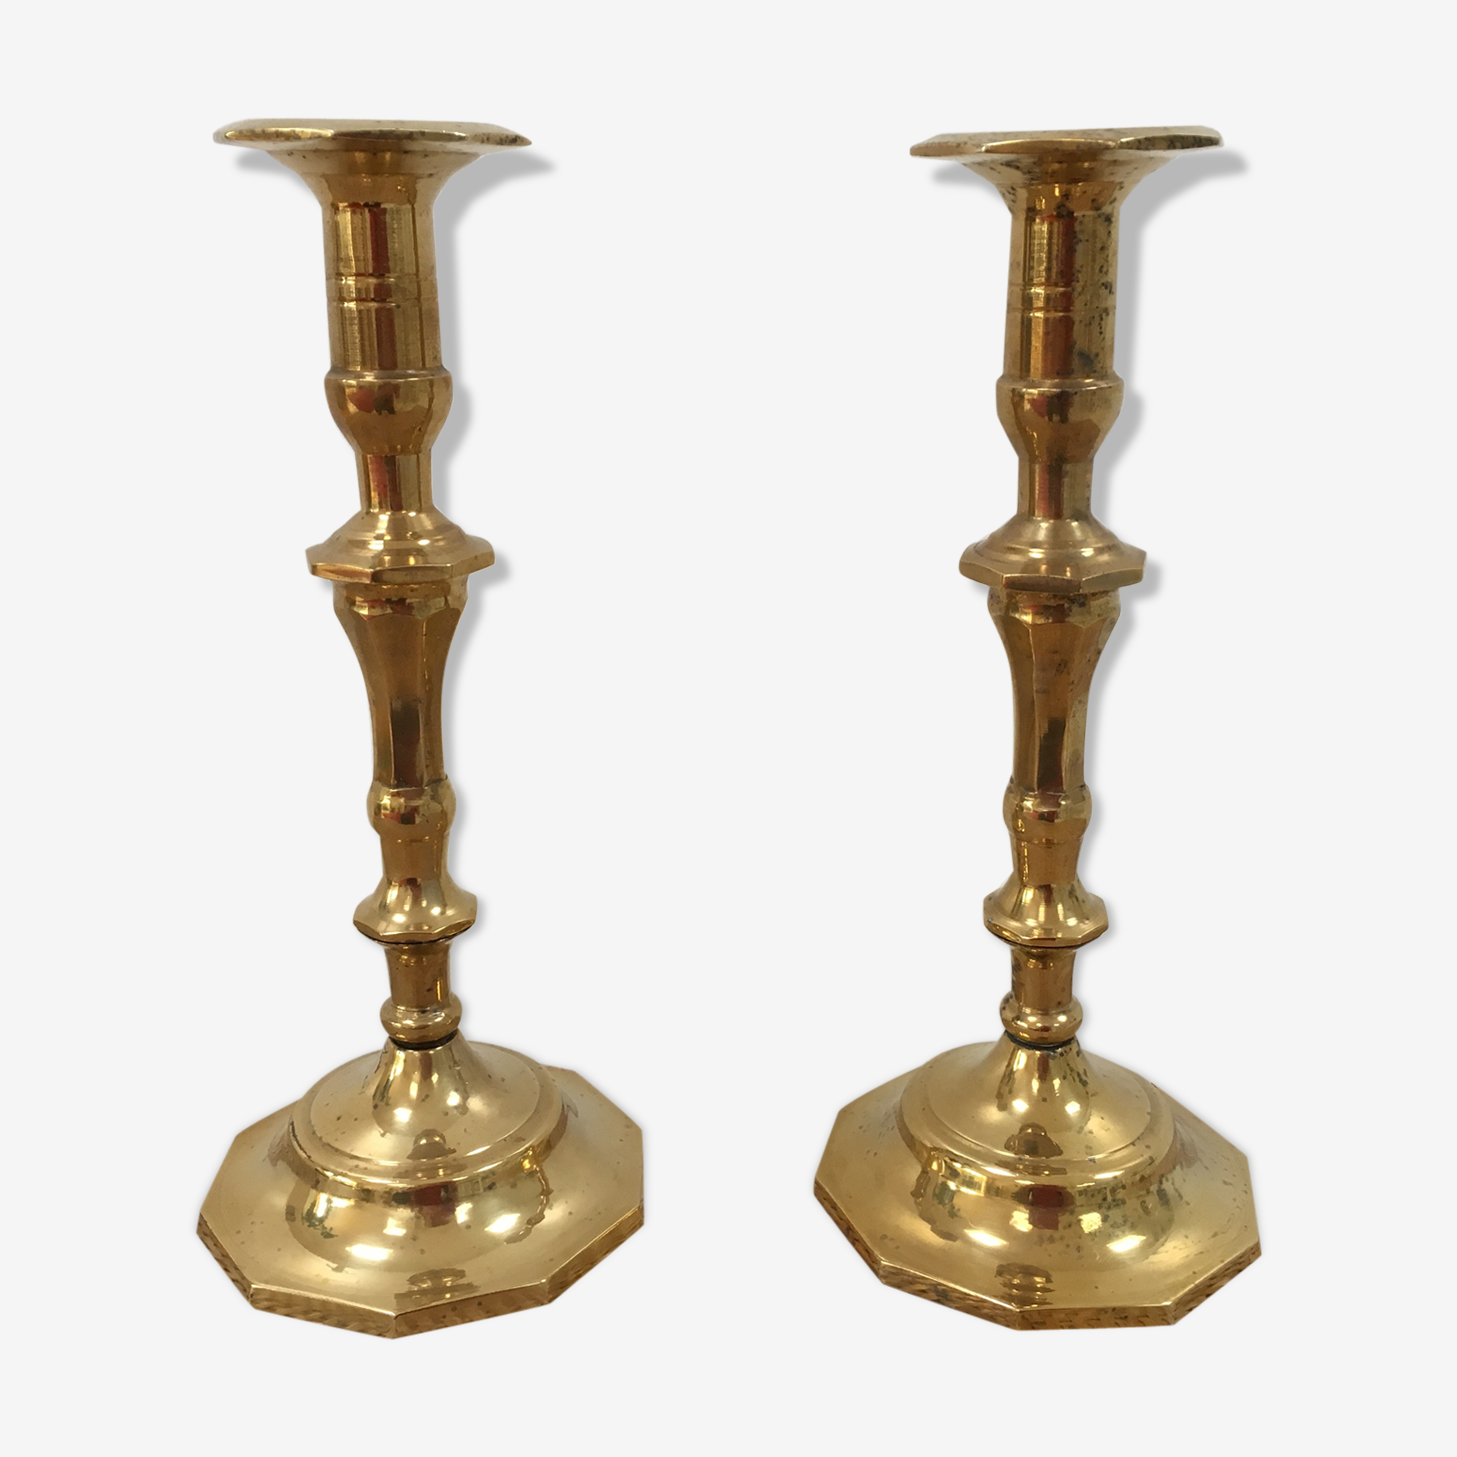 Old candlesticks in brass duo